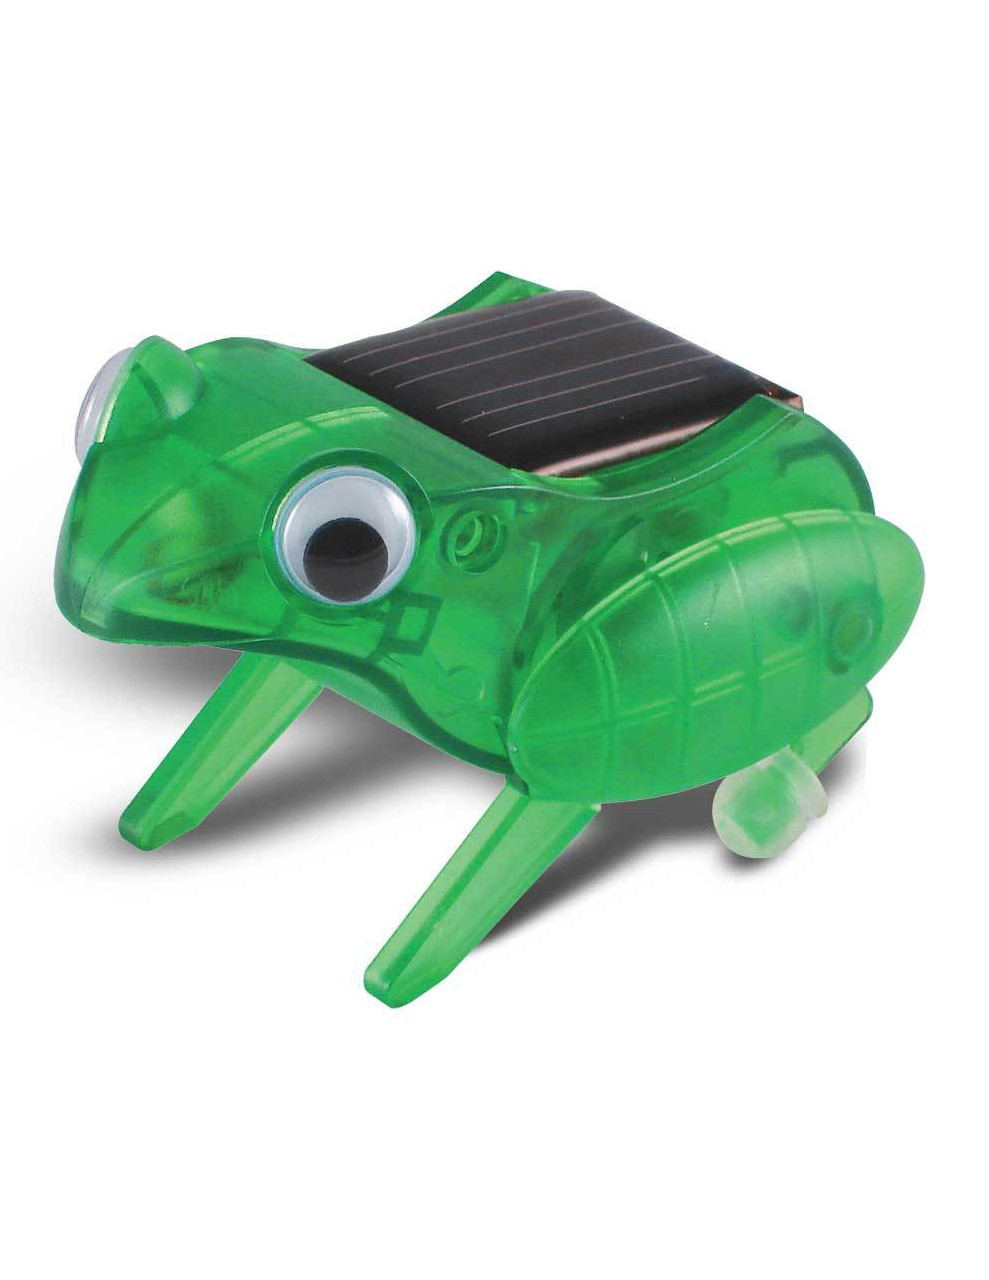 Includes Solar Cell Recommended Age 10+ Dimensions 2.6 x 1.8 x 1.7 OWI OWI-MSK672 Happy Hopping Frog Educational Mini Solar Kit Have Approximately Twenty-five Parts to Assemble